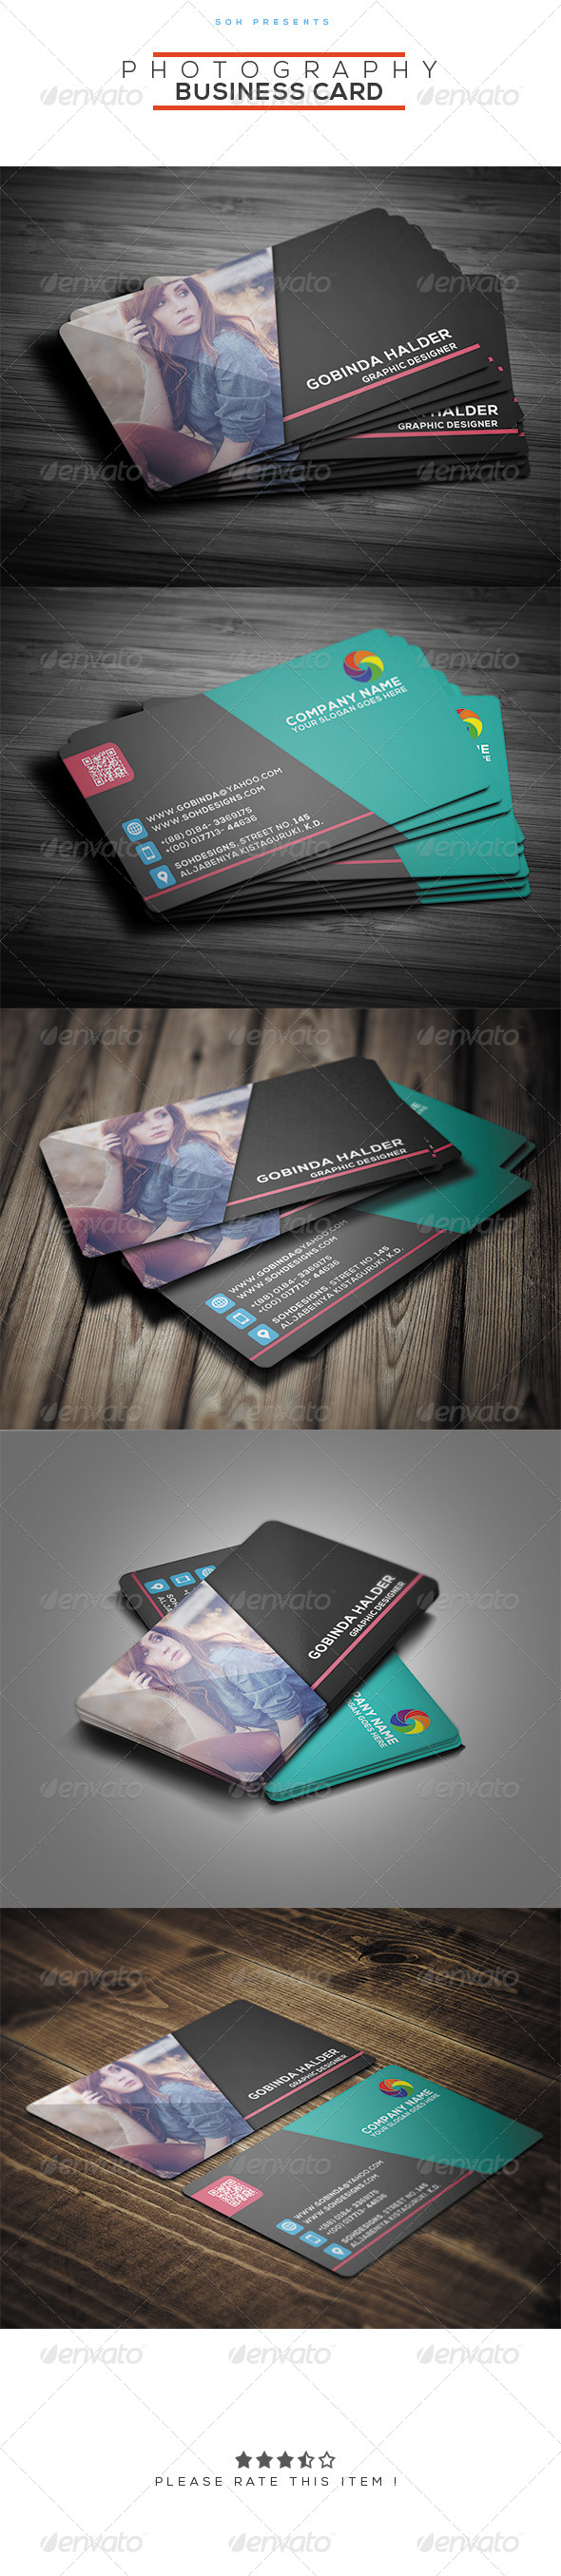 GraphicRiver Photography Business Card Template 8389632